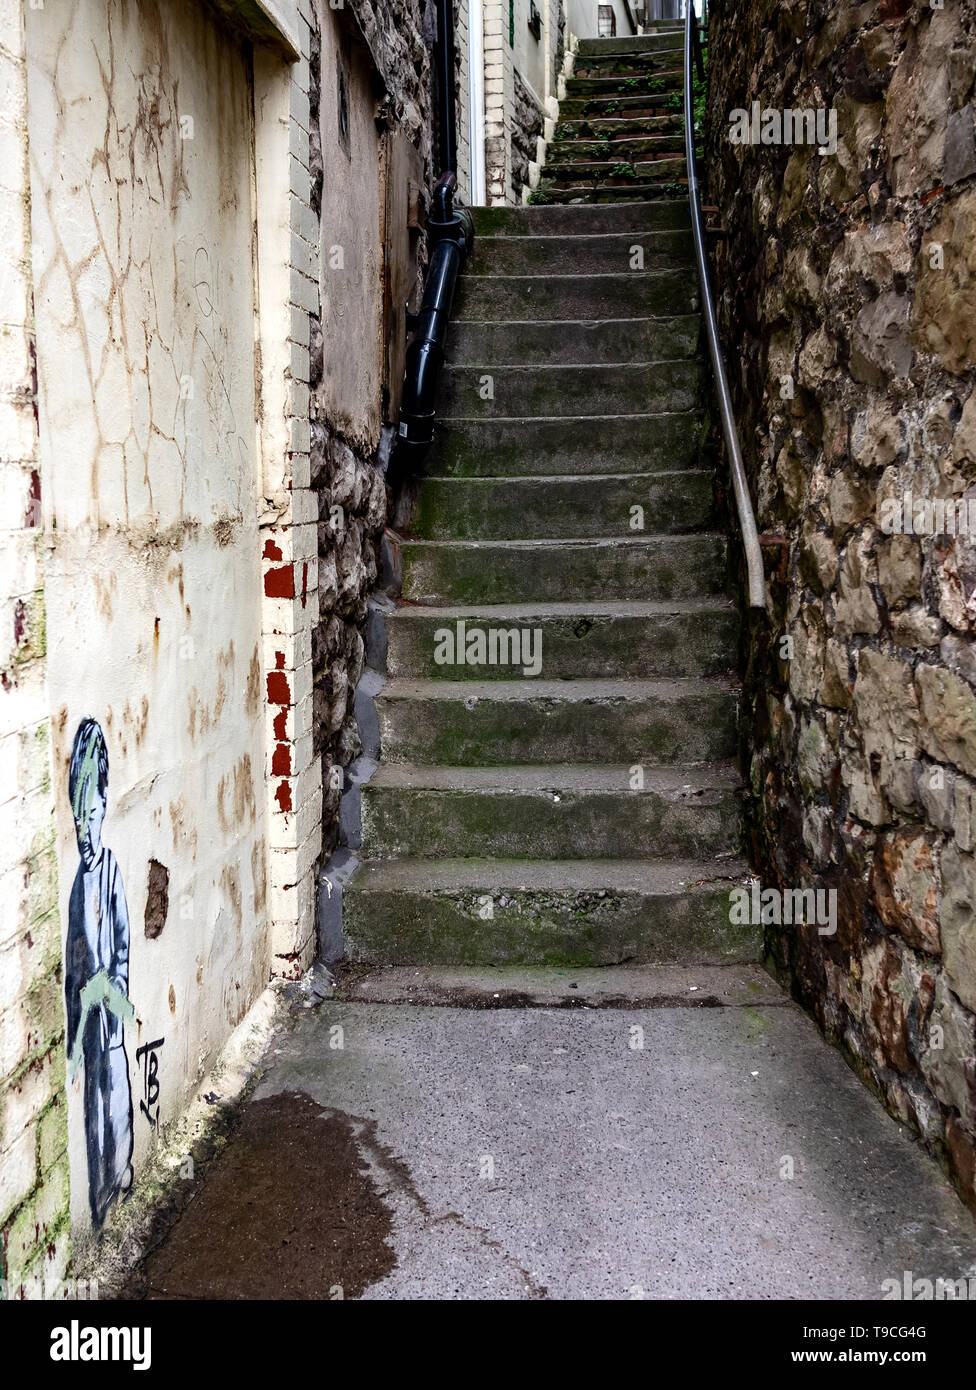 Old stairway in Weston-super-Mare with graffiti on wall - Stock Image